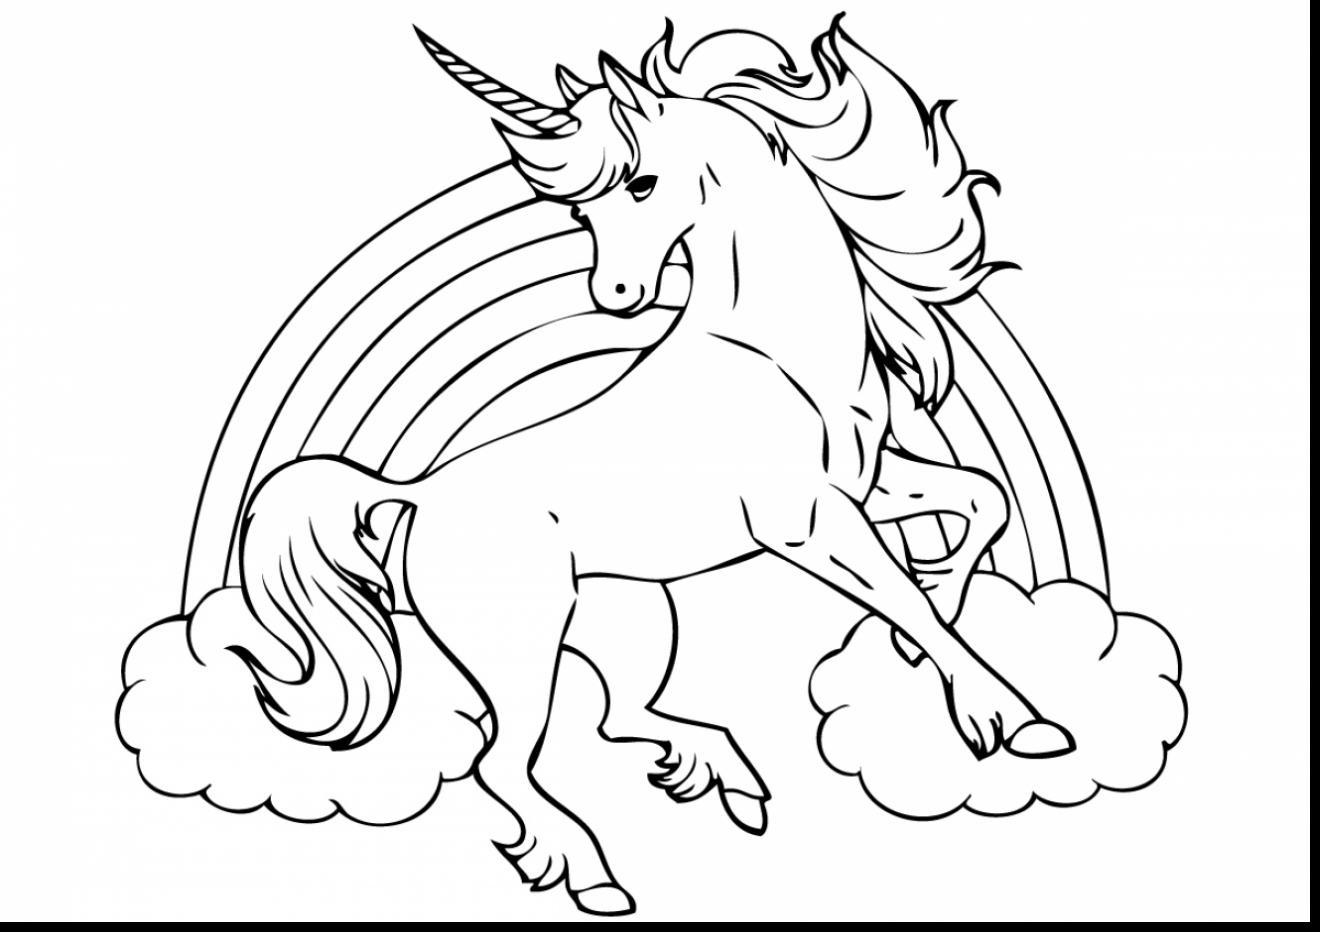 1320x932 hurry coloring pages of unicorns delivered unicorn fabulous kids